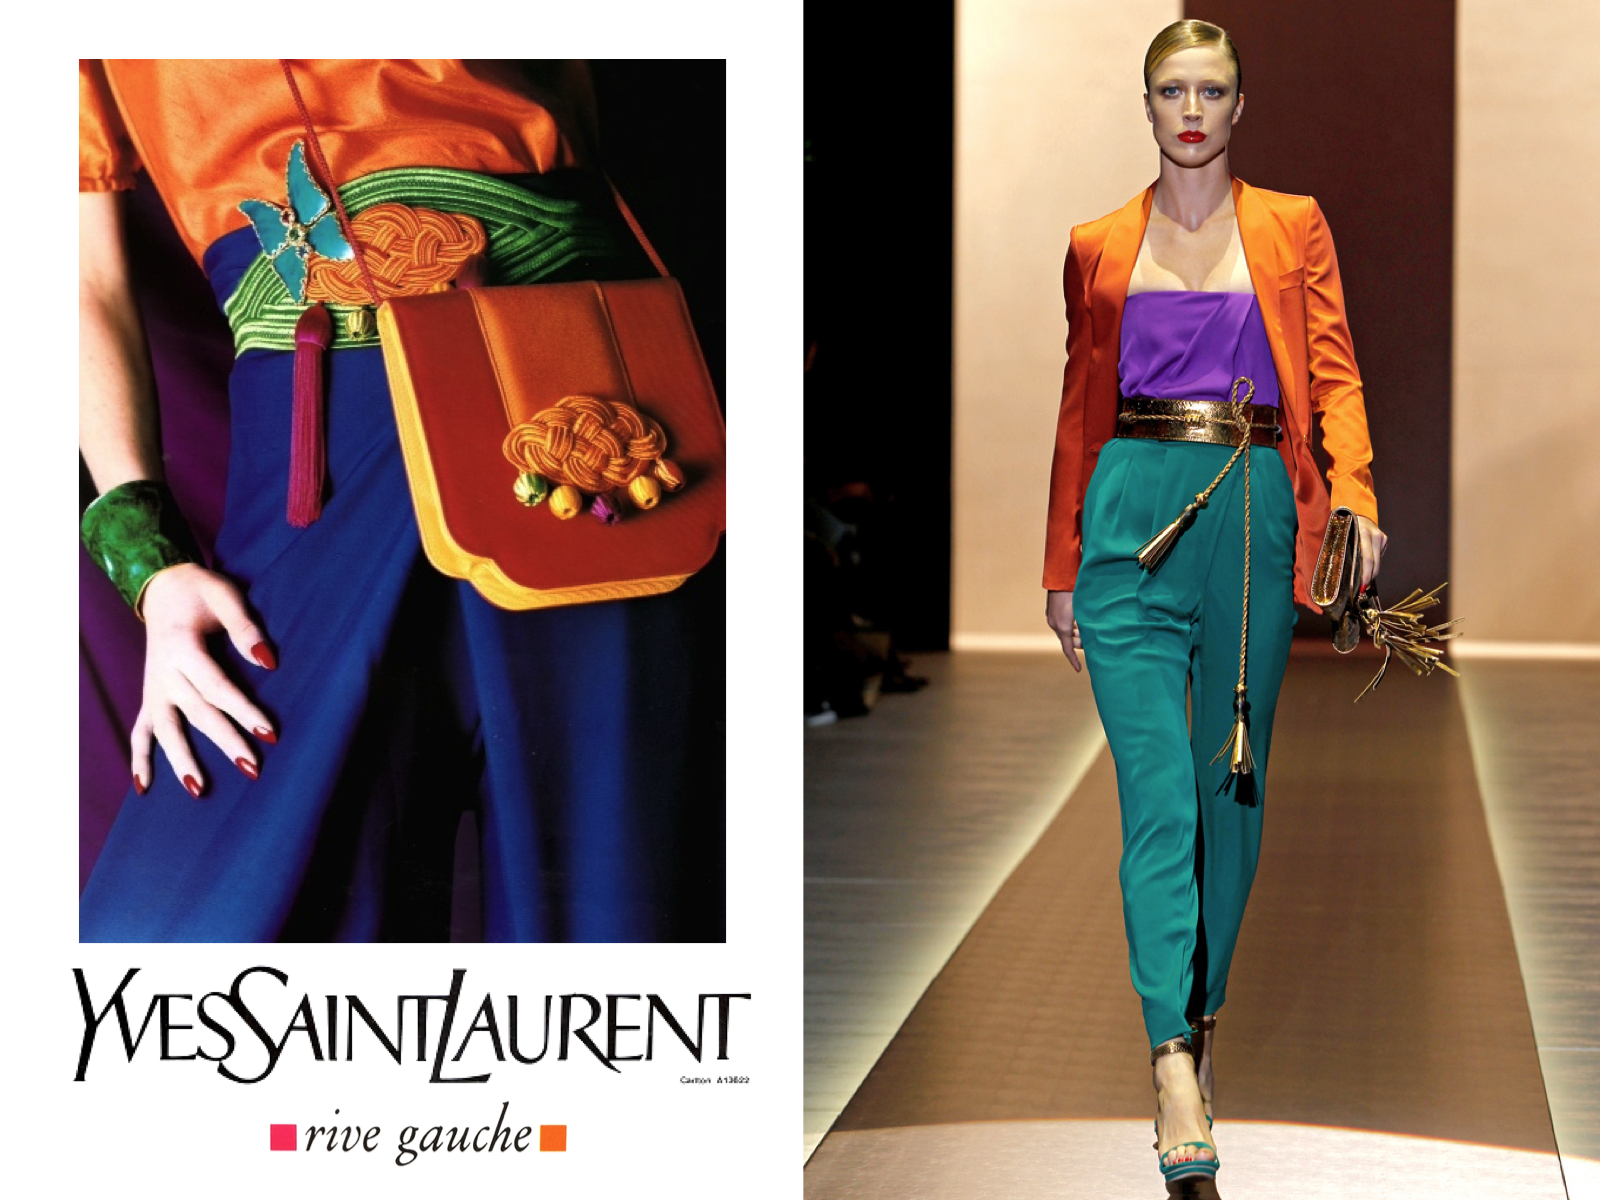 709b9d949d972 INTO THE FASHION: INSPIRATION Yves Saint Laurent SS||1993... Gucci ...